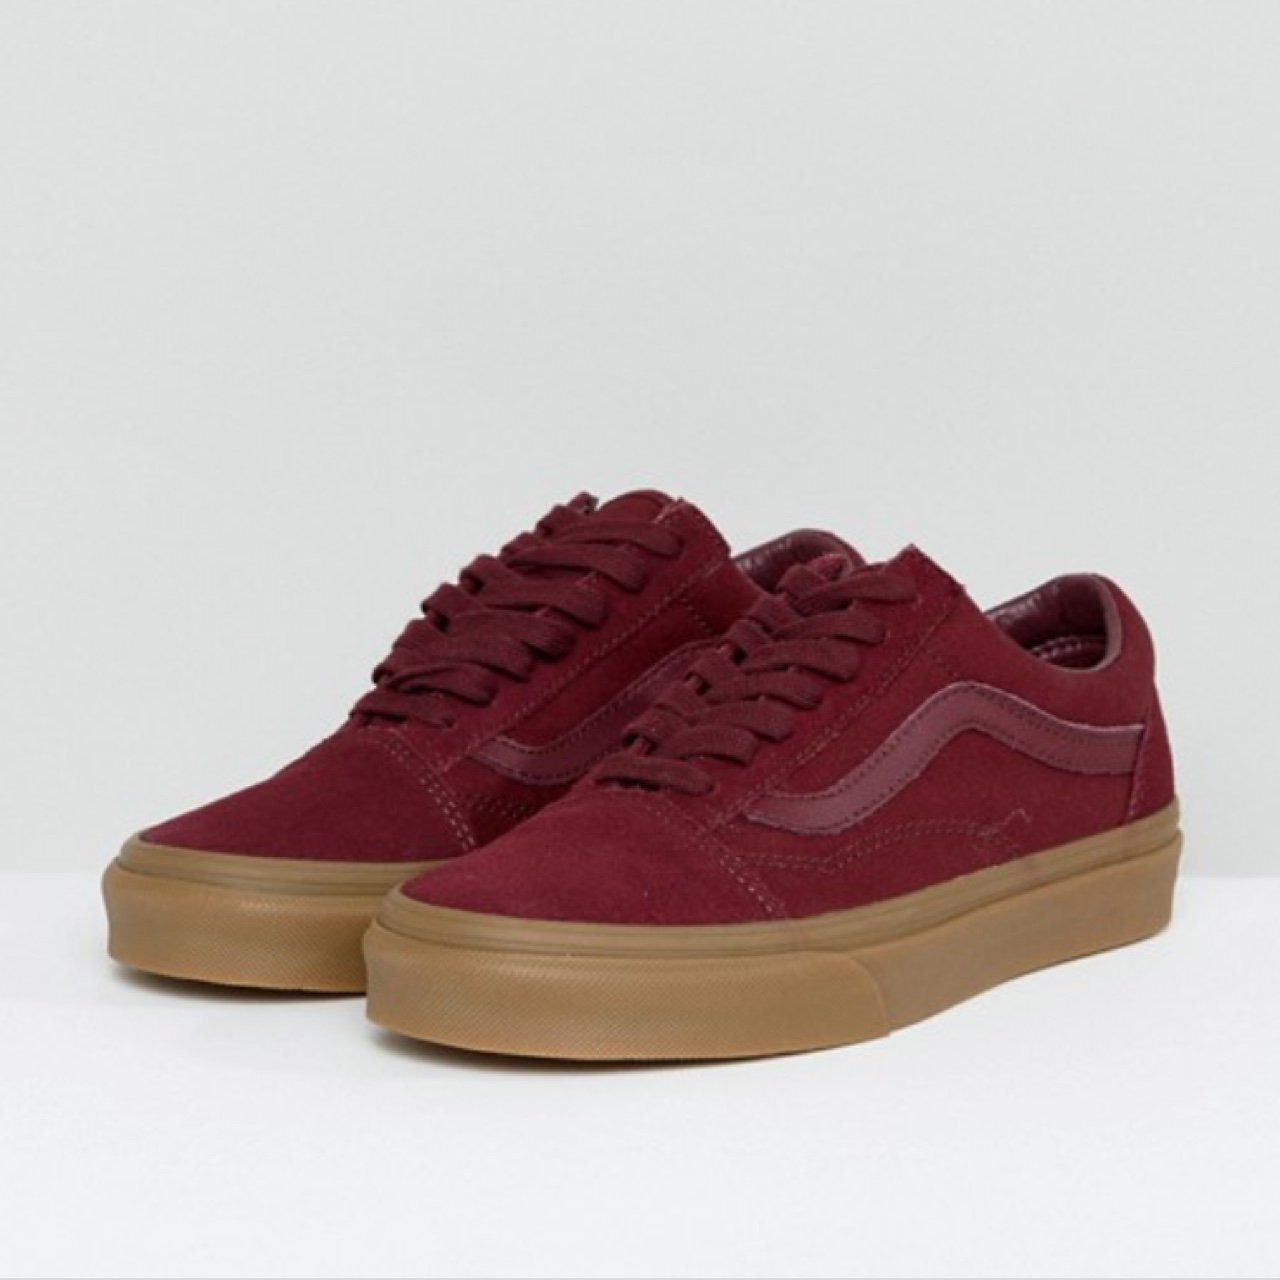 4861804e6db1 Burgundy gum sole old skool vans. So nice and only worn like - Depop